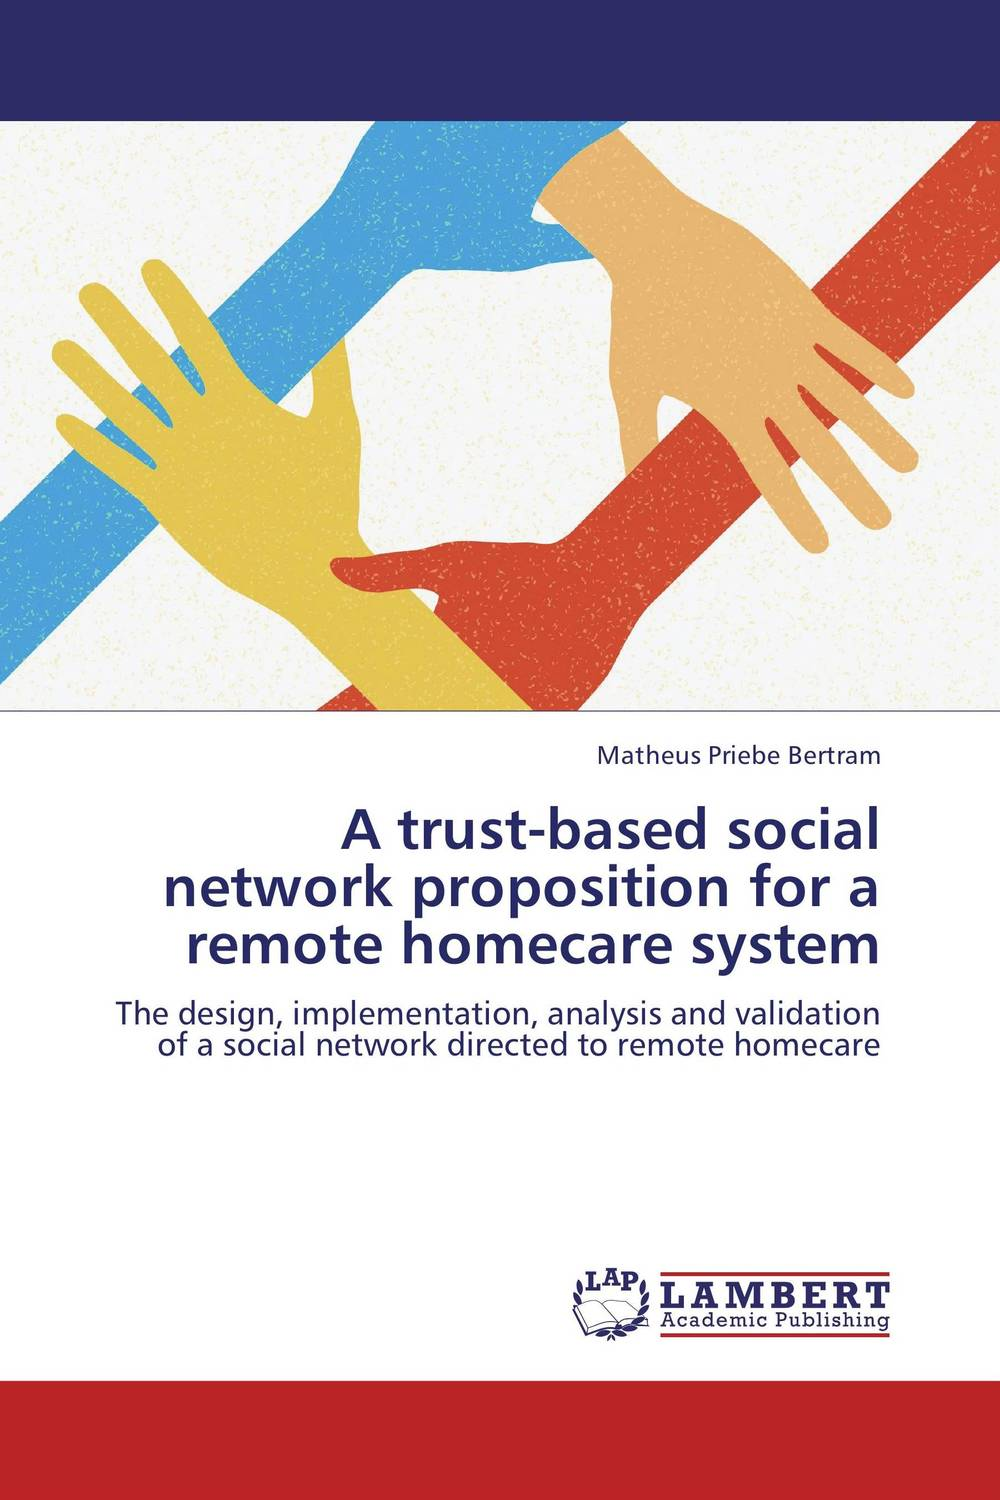 A trust-based social network proposition for a remote homecare system a van soest explaining subjective well being the role of victimization trust health and social norms